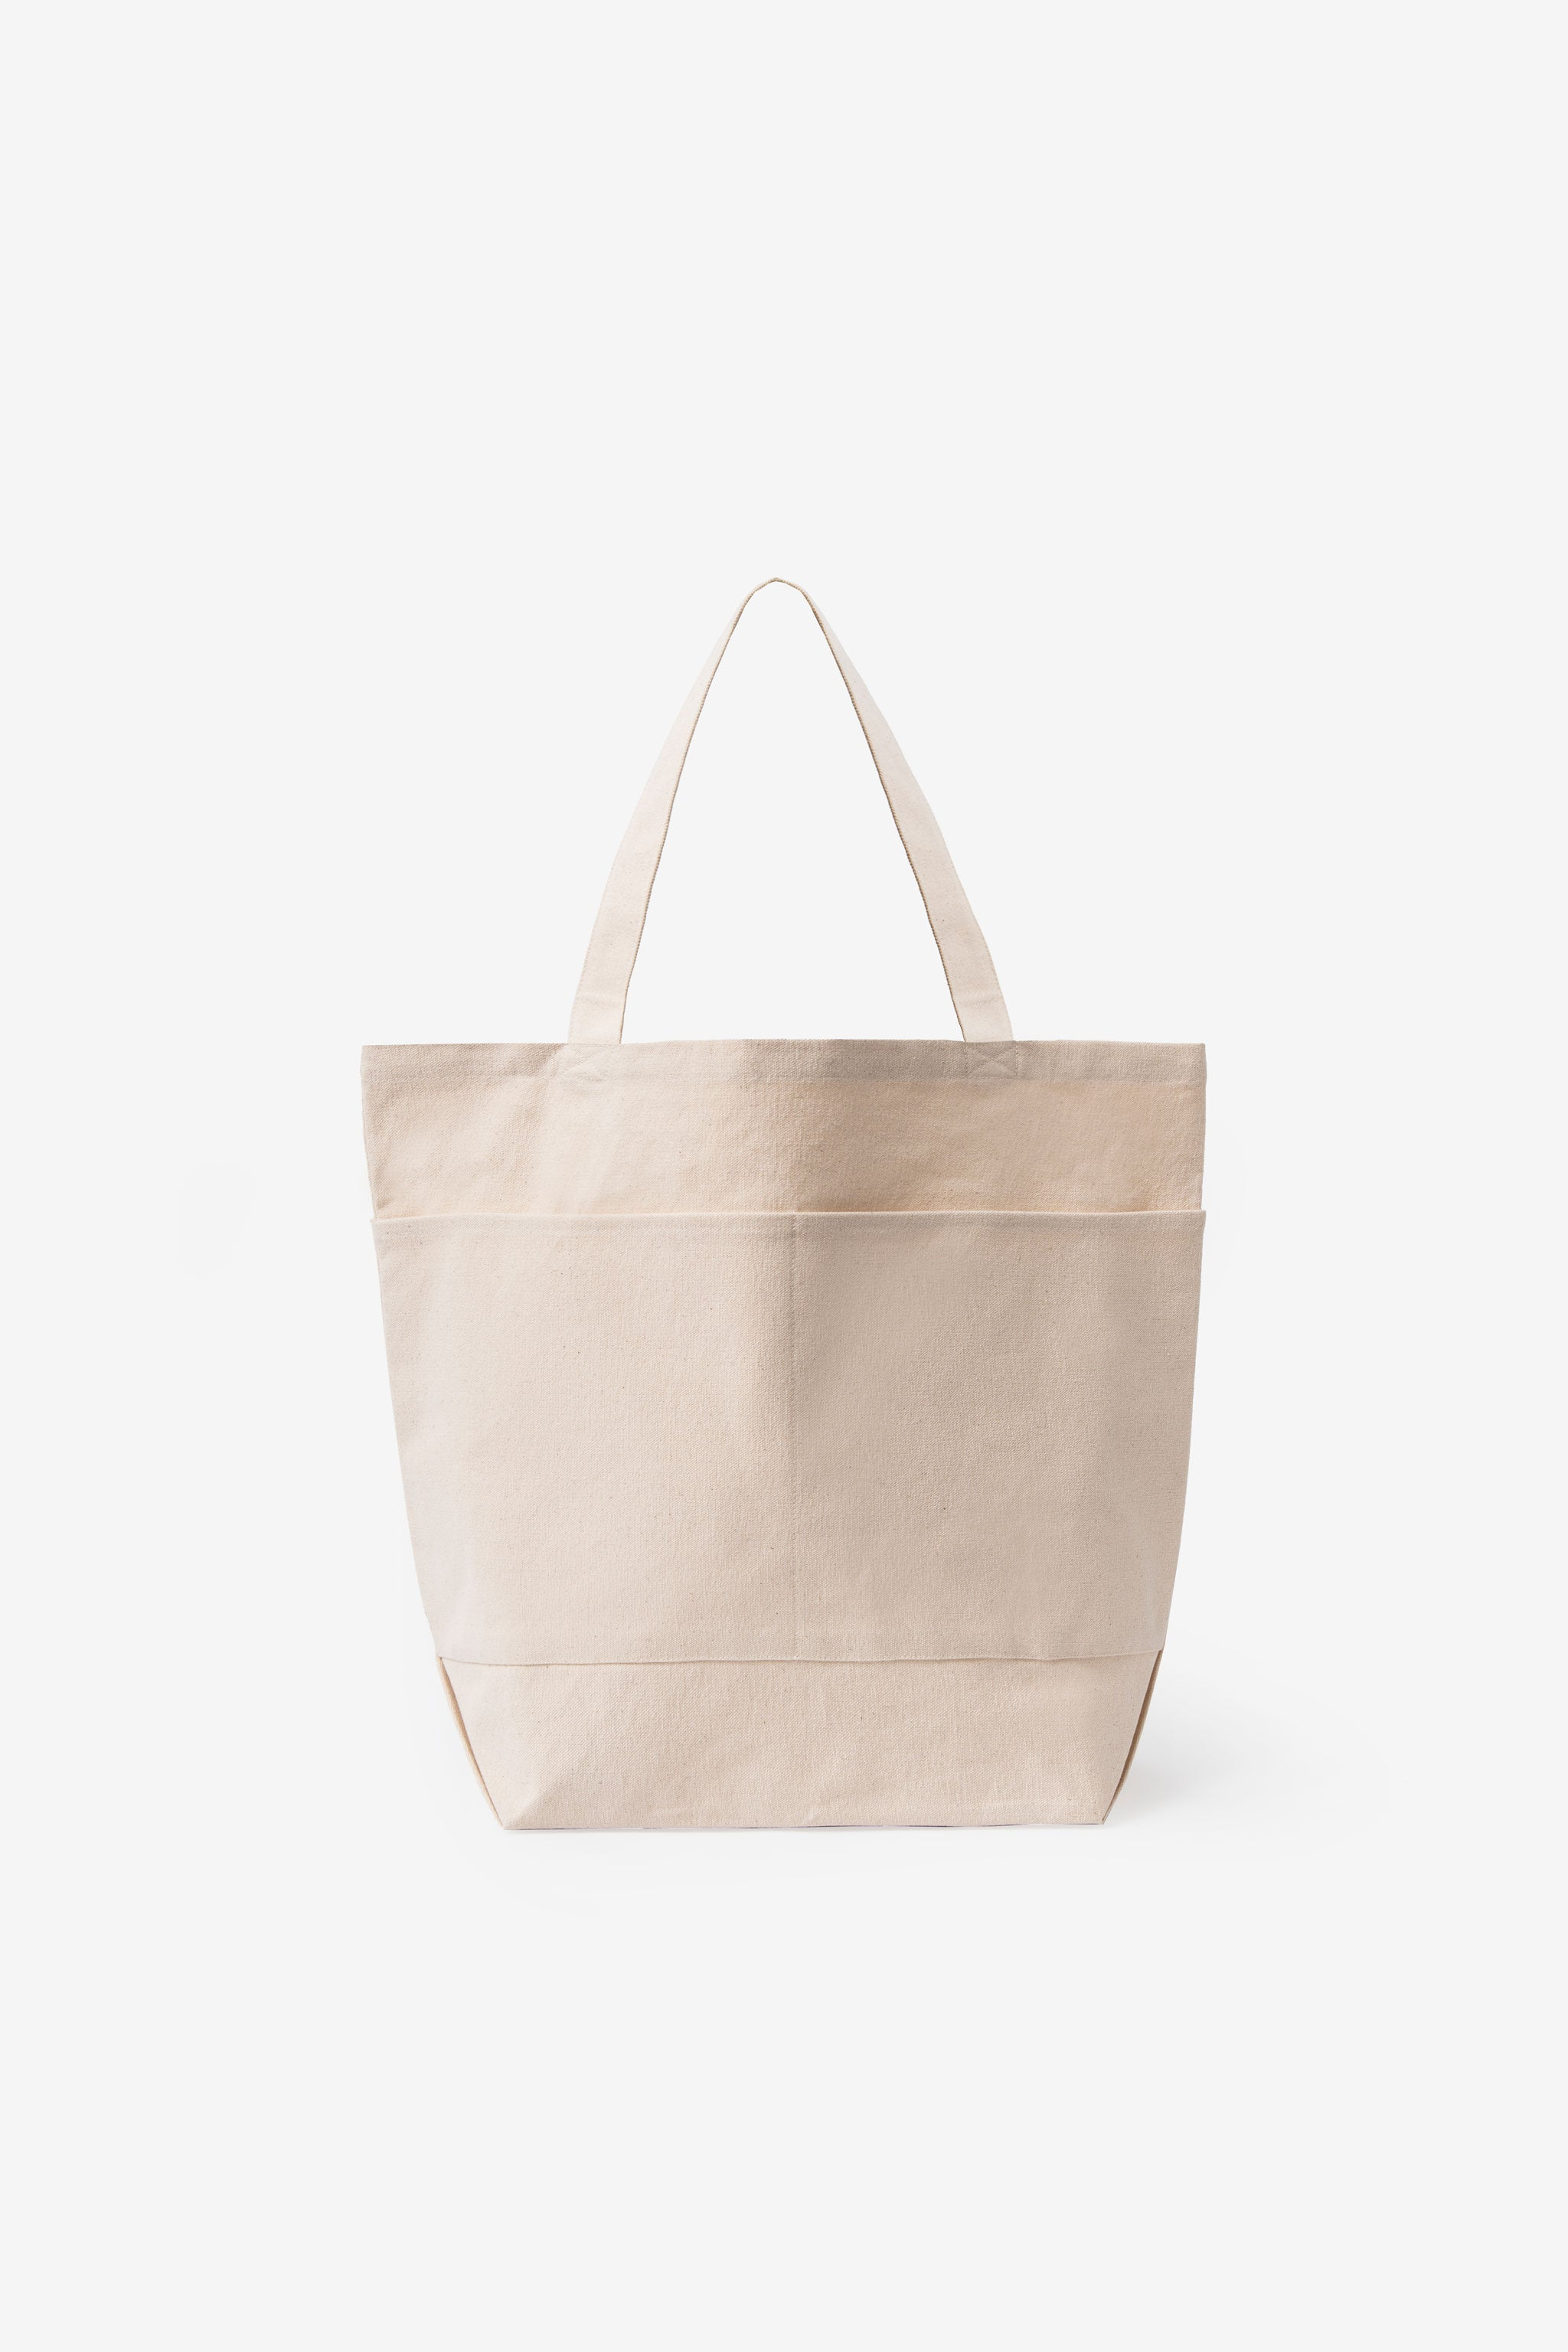 Goodfight Good Tote - White Puff